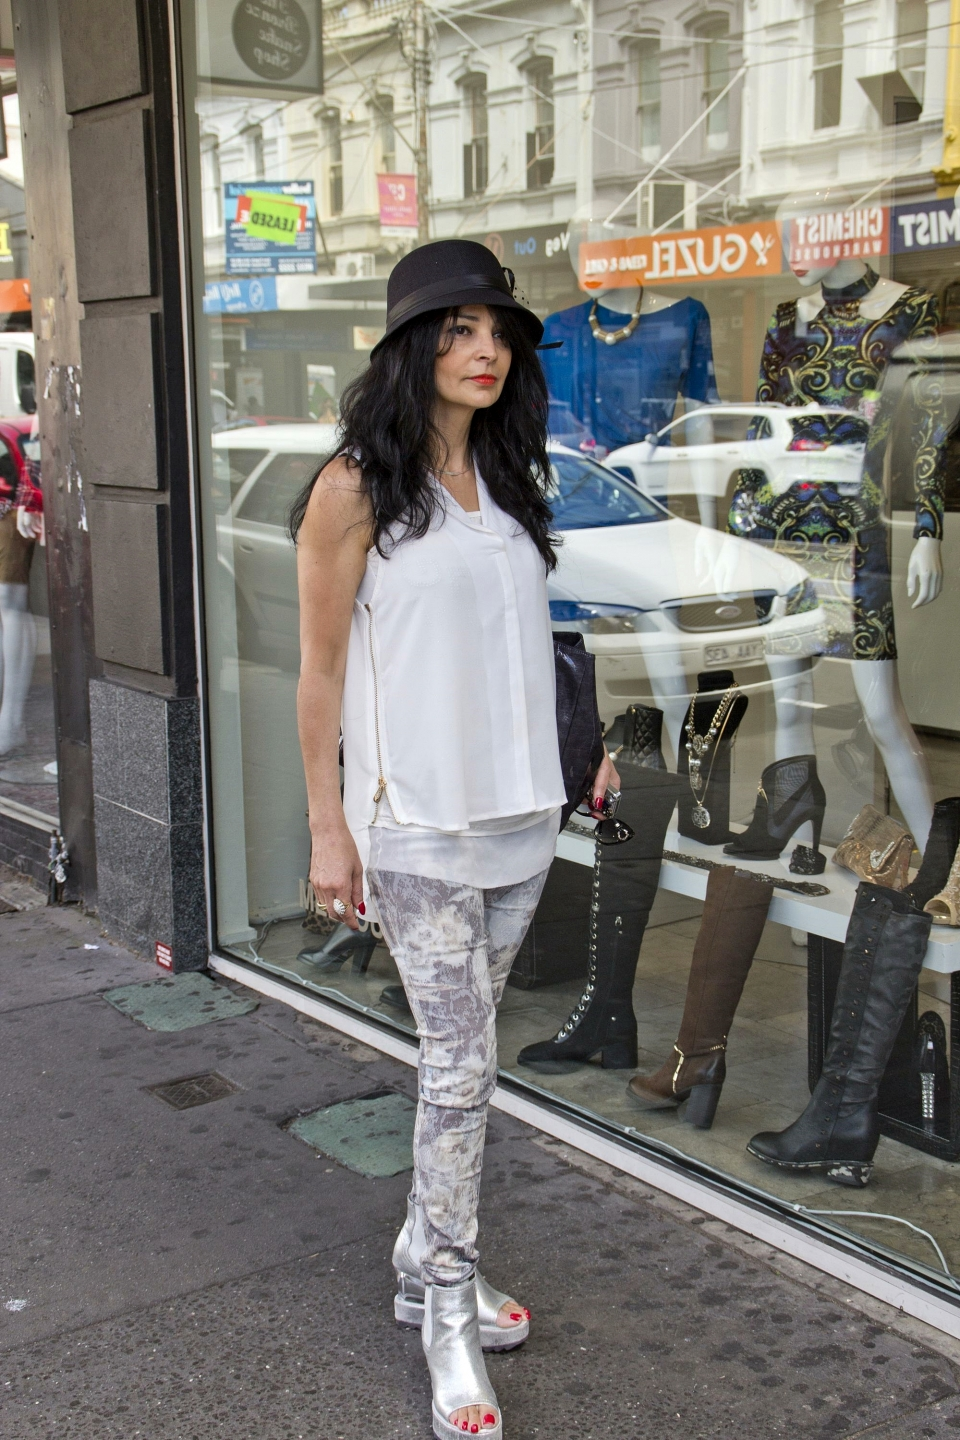 "Roubi Branecki, business owner, Chapel St, South Yarra. ""I am the designer of what I am wearing and own a boutique in South Yarra."" Pic: Les Brown"